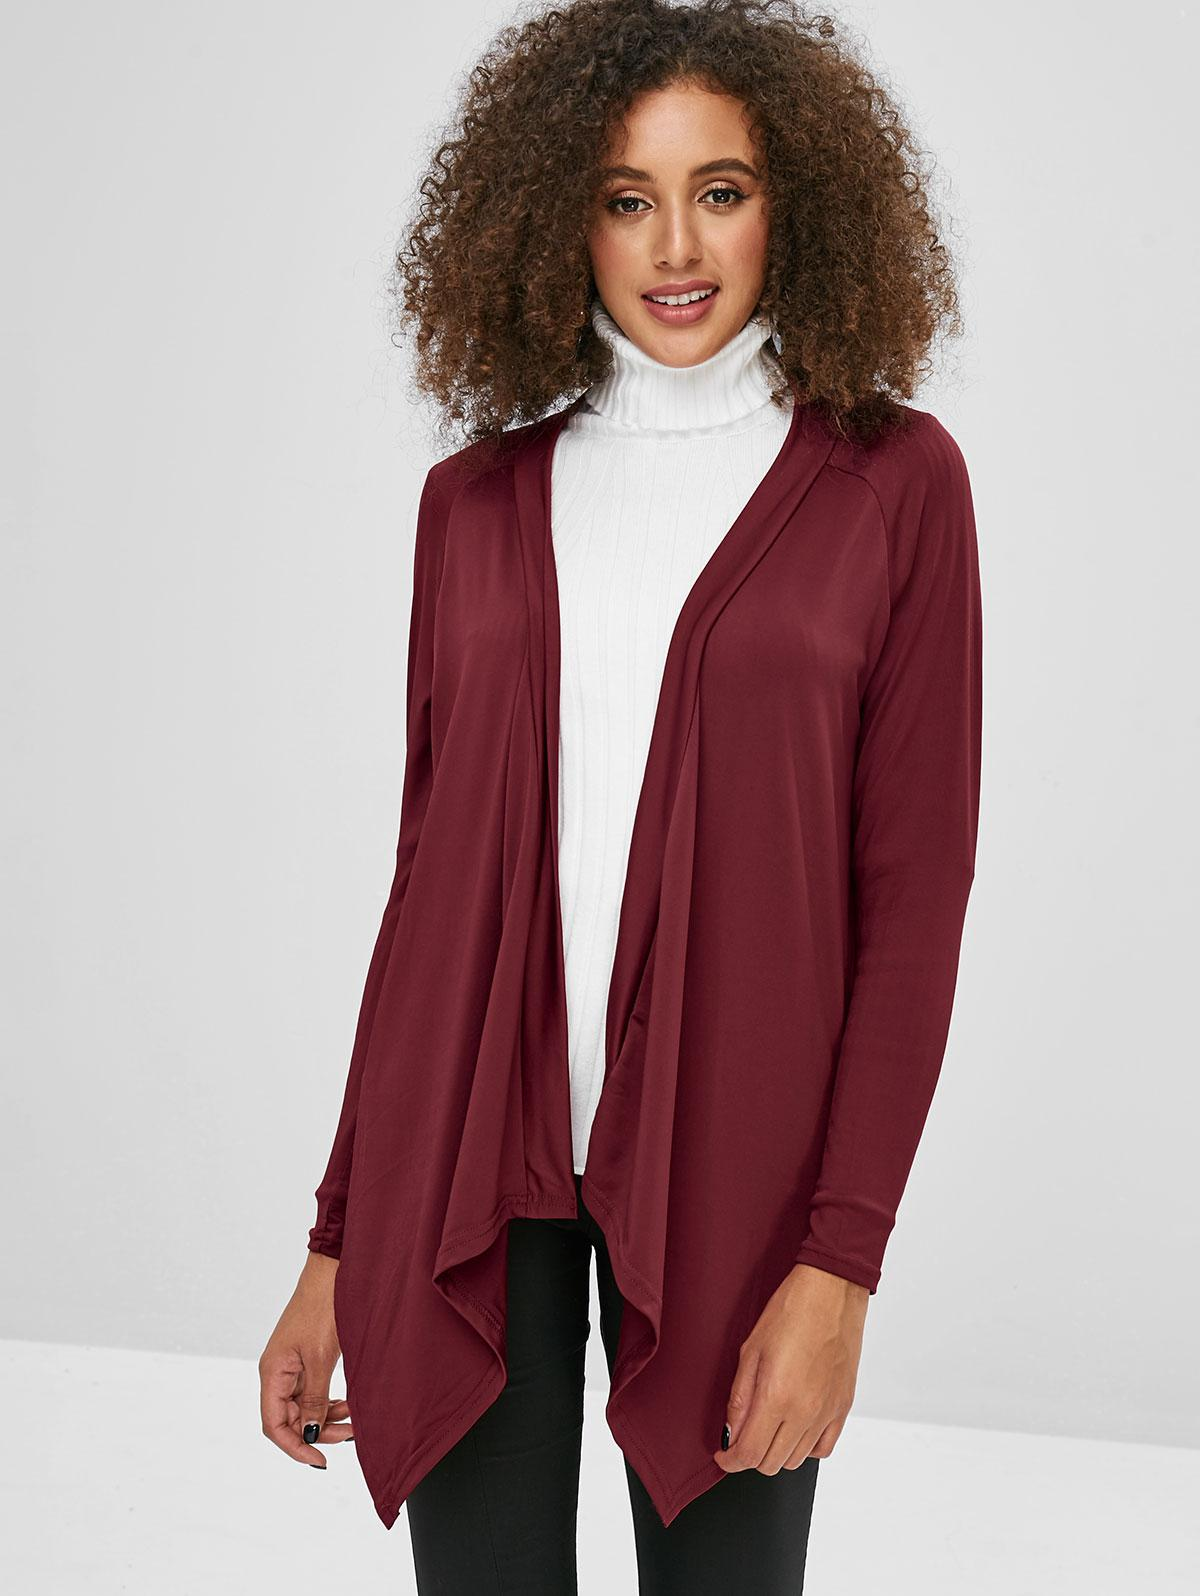 Solid Color Open Asymmetric Cardigan, Red wine